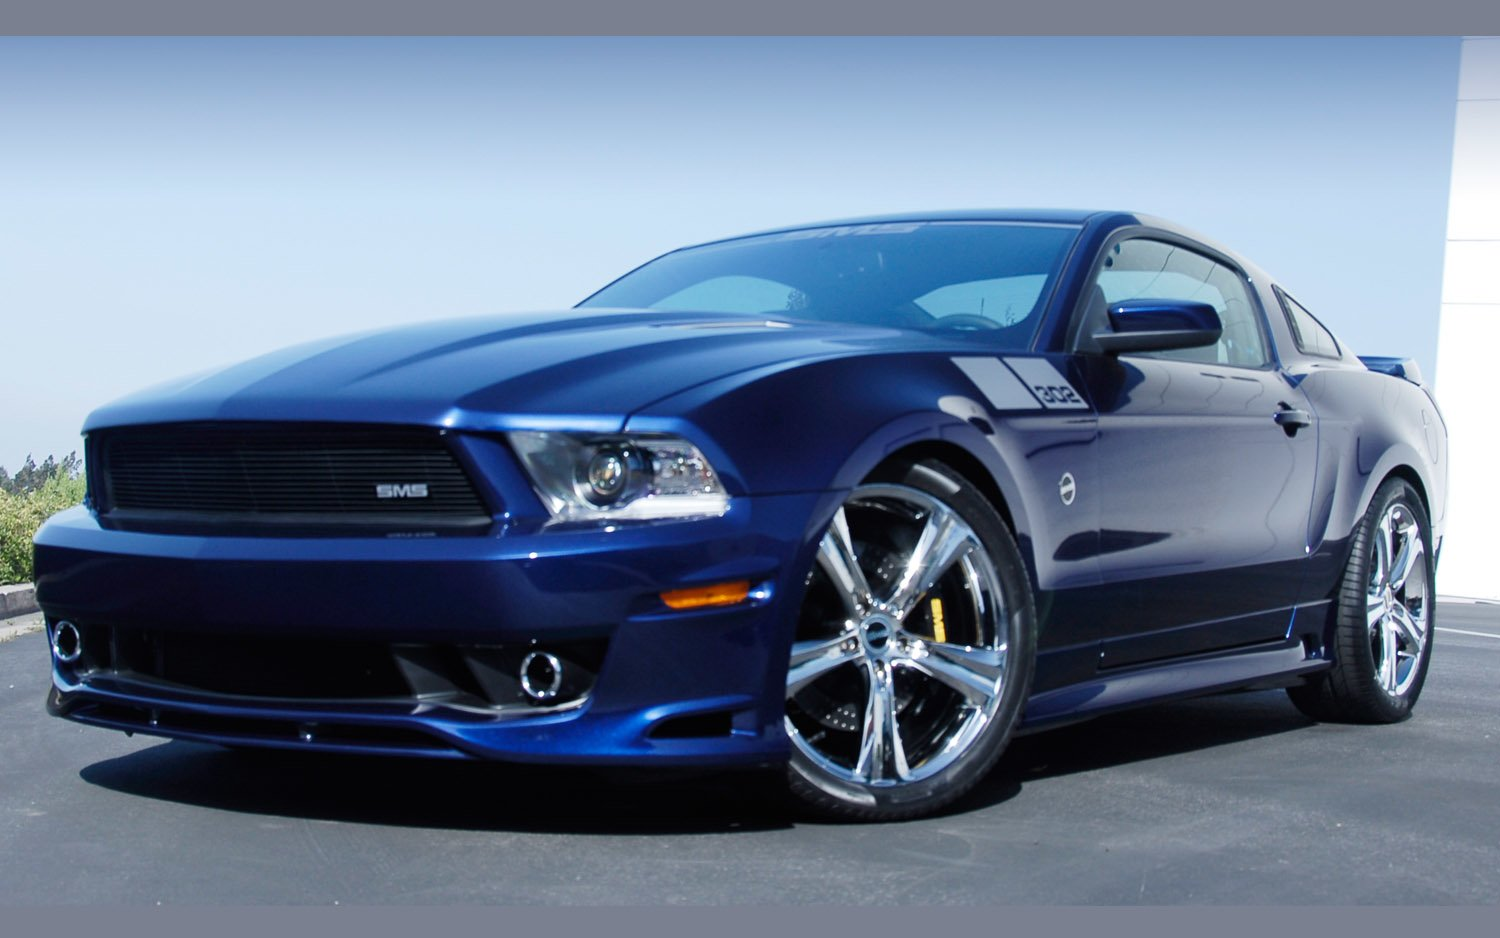 Latest Cool Car Wallpapers Saleen Cars 2013 Free Download